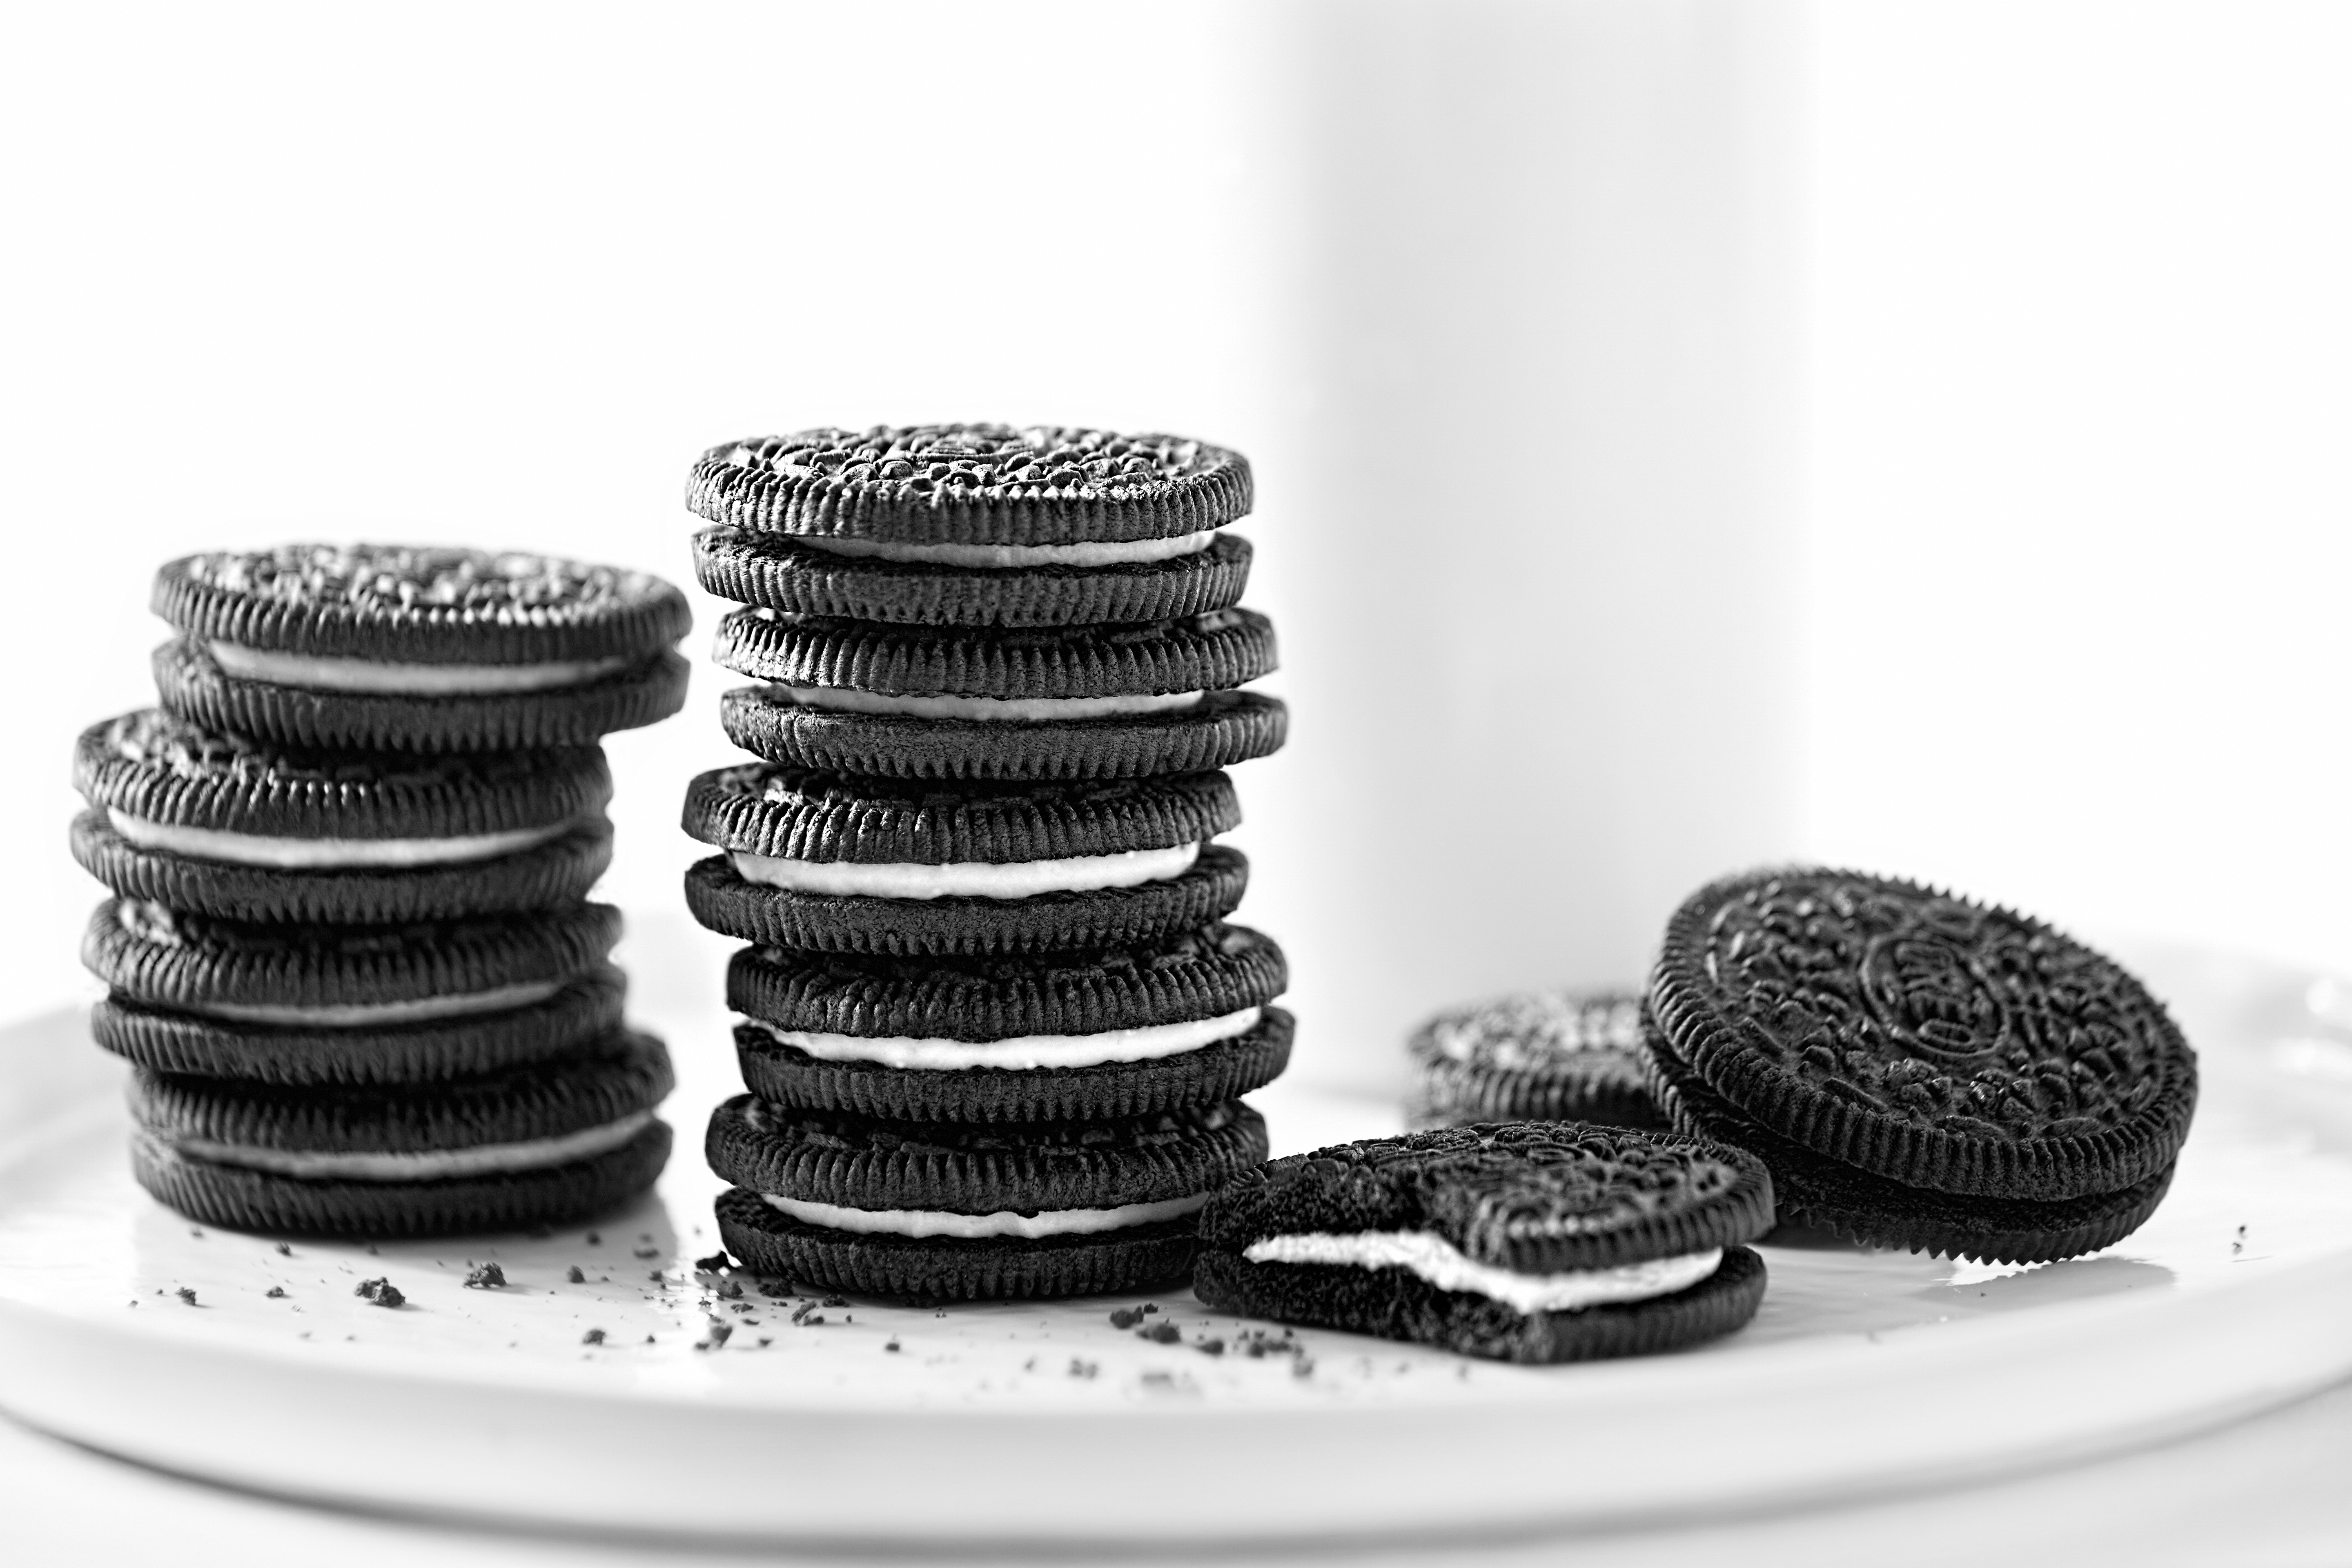 A stack of Oreo cookies on a white table.